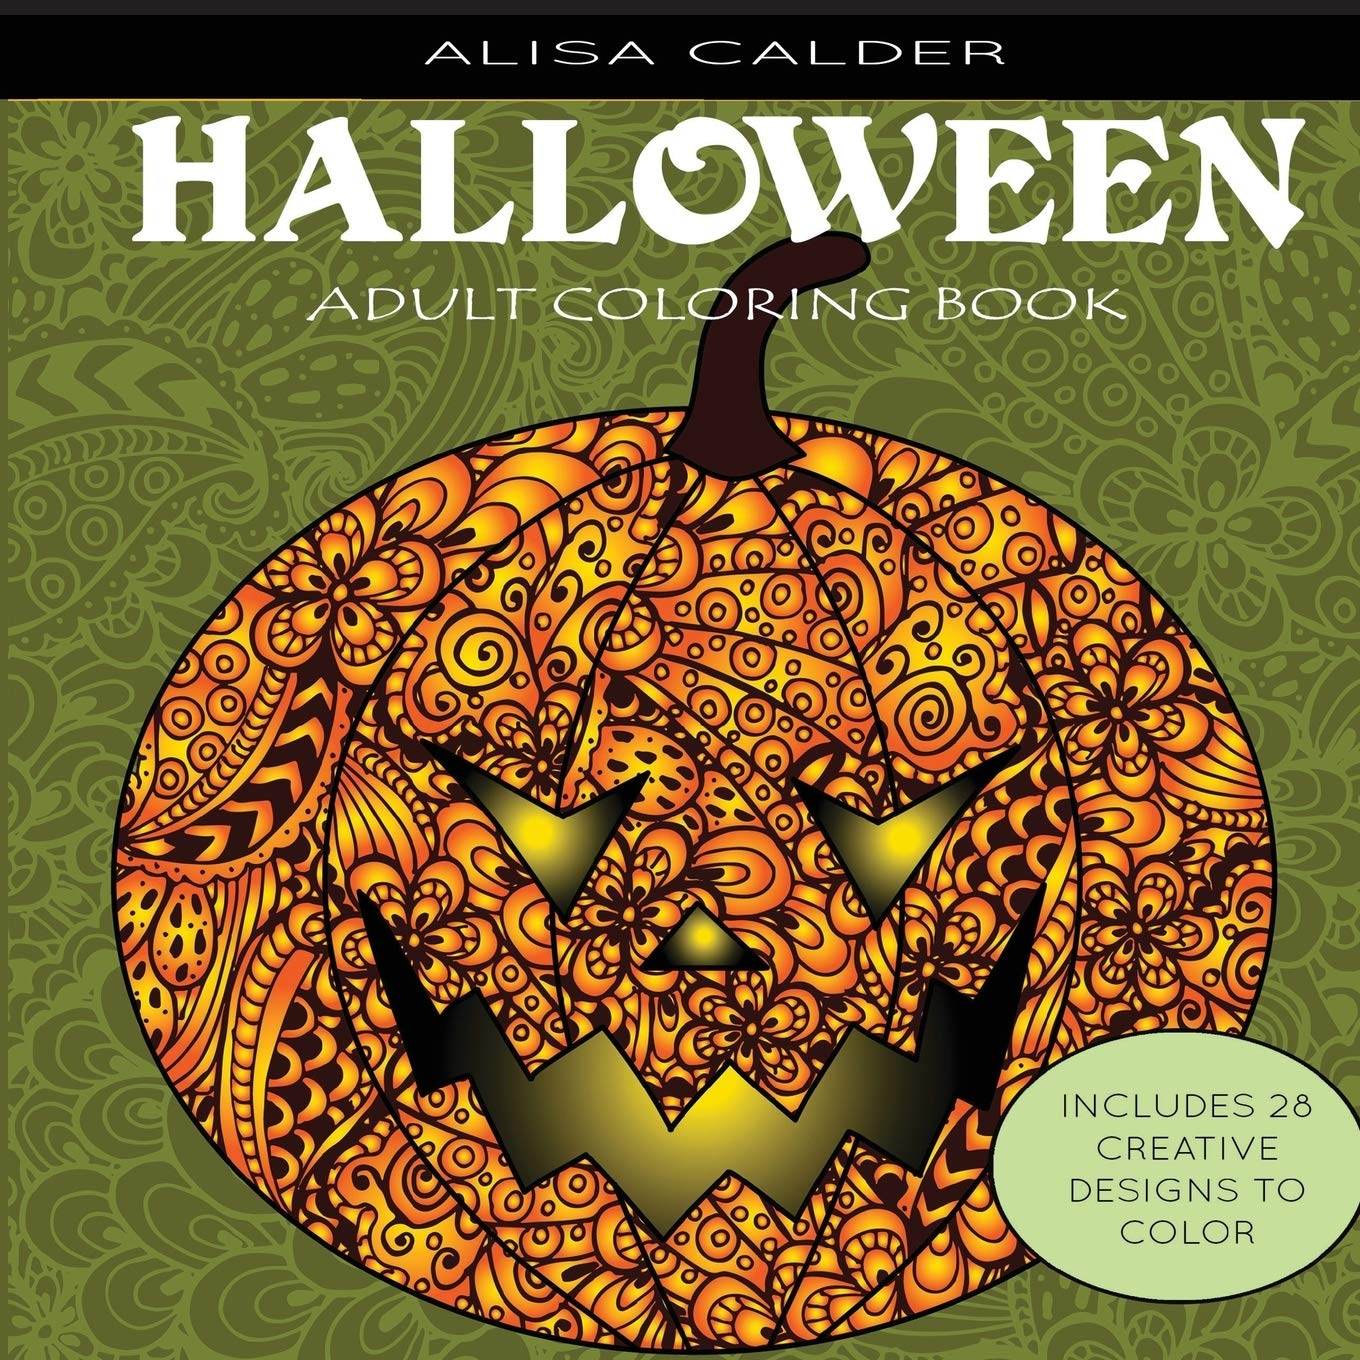 Halloween Designs Adult Coloring Book